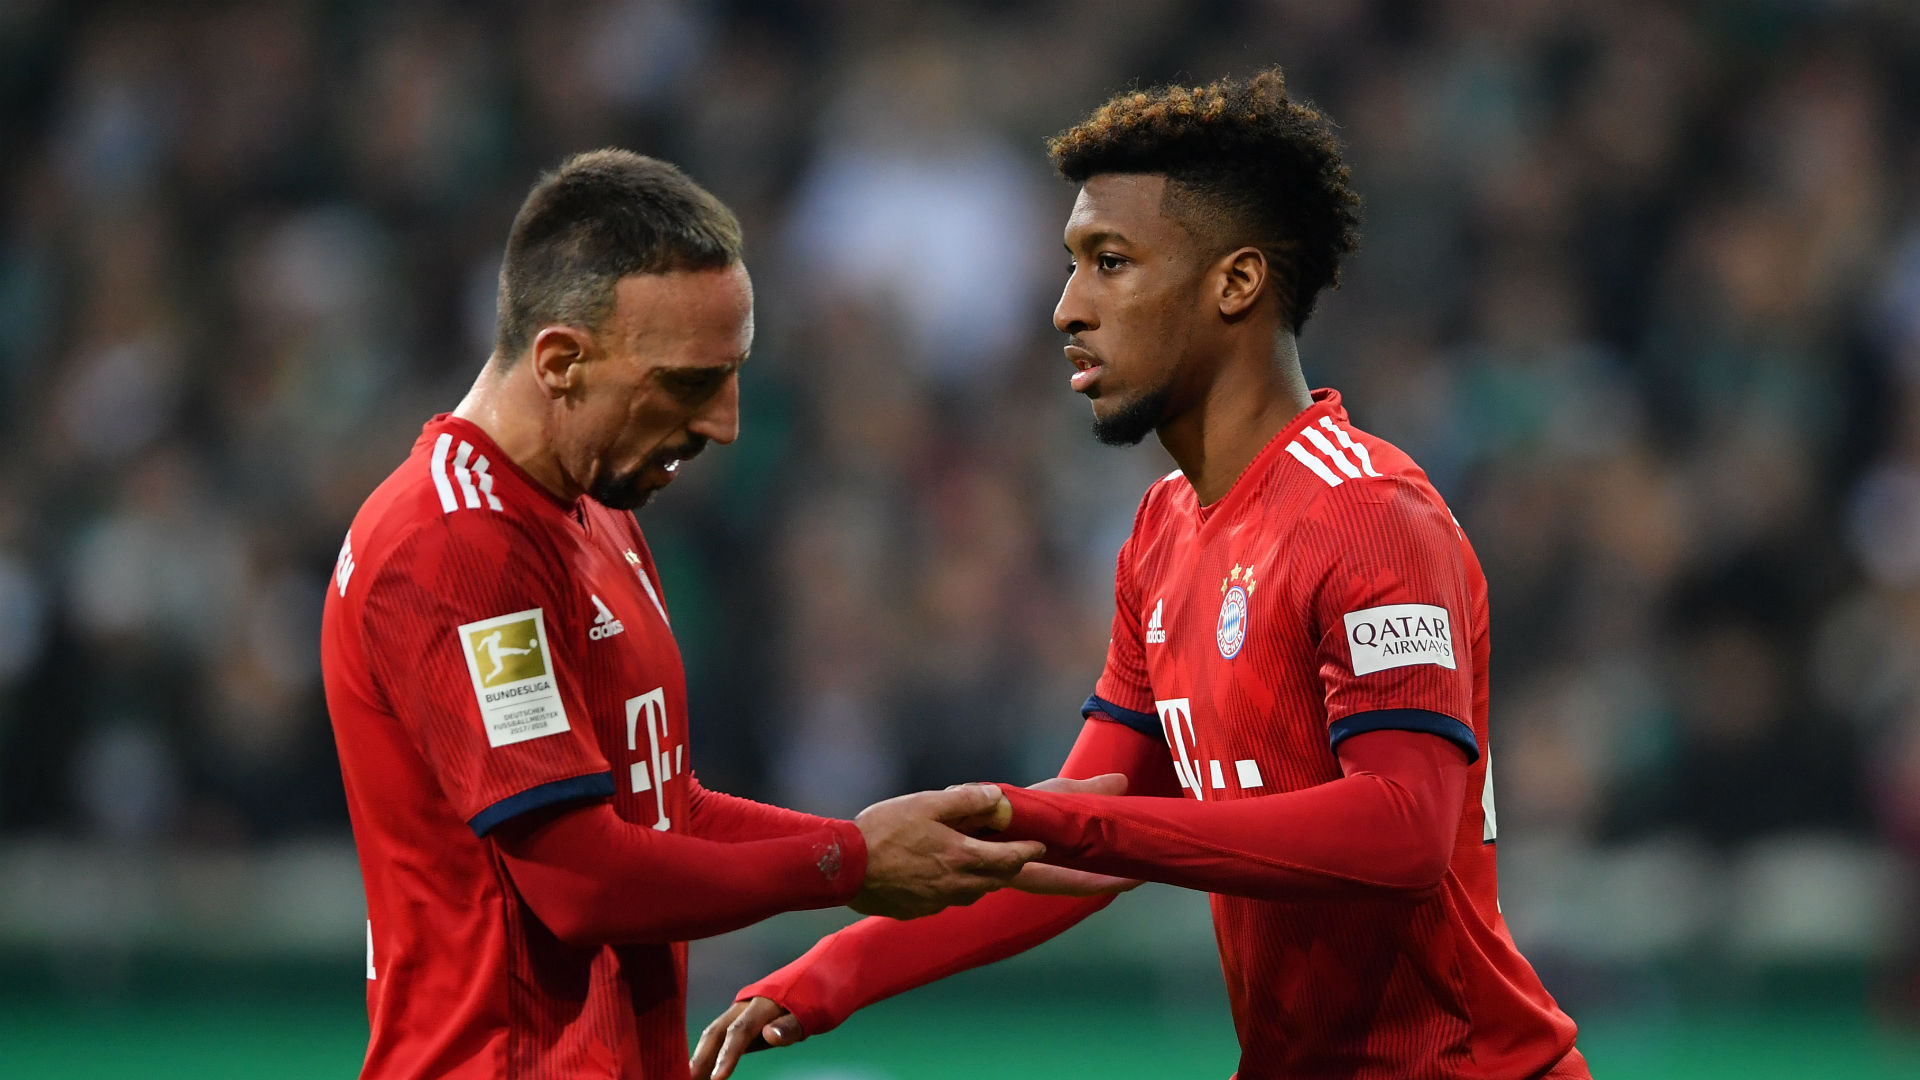 Bayern already benefitting from Coman return